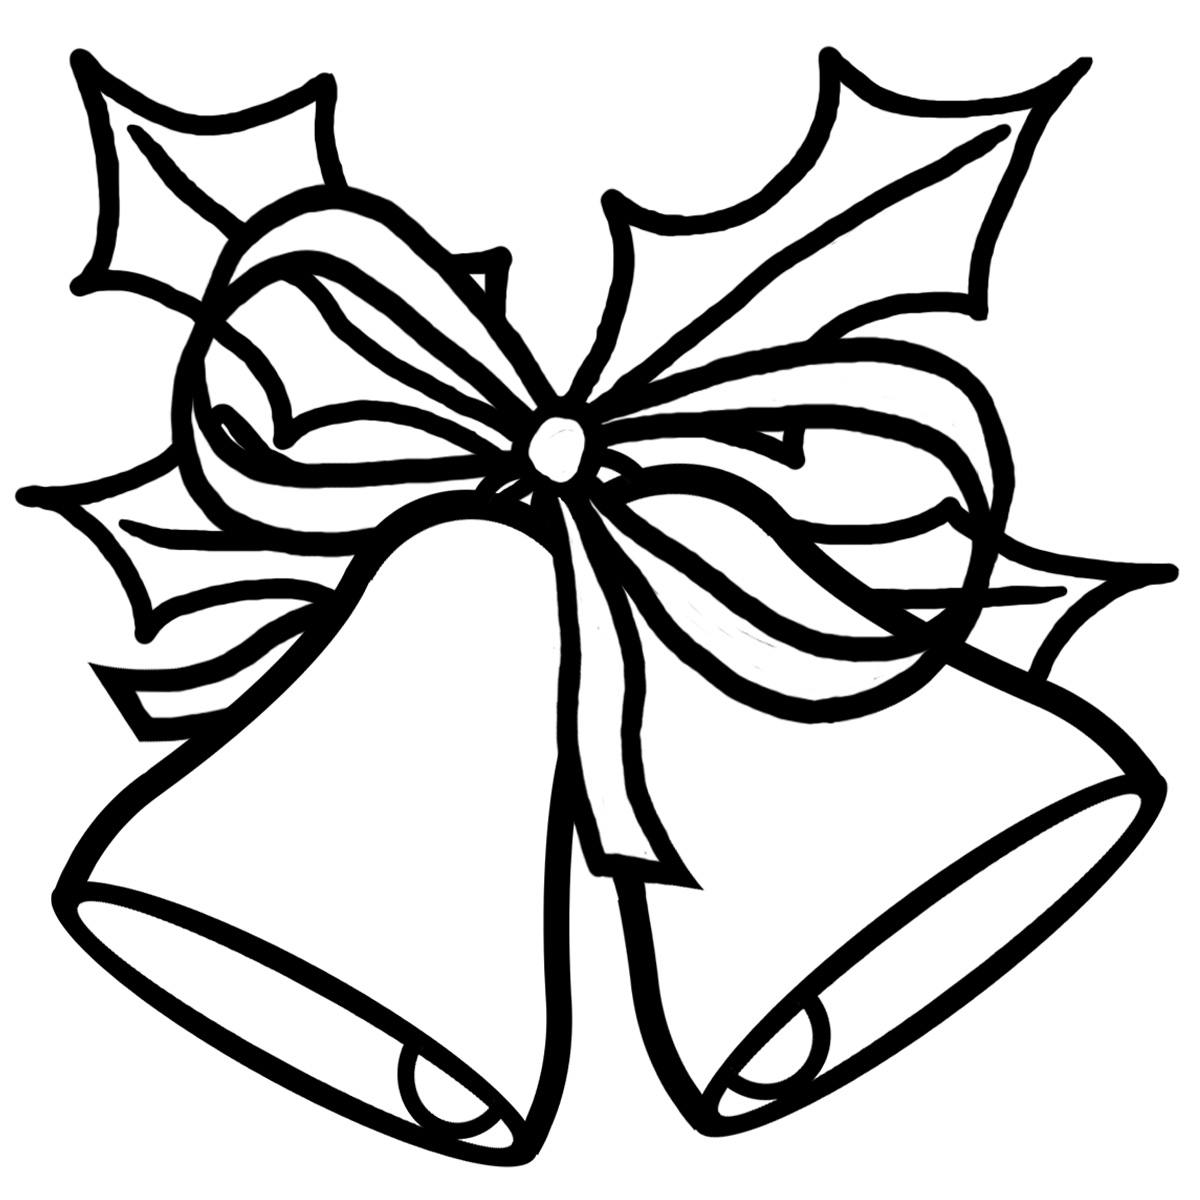 Gift Bag Clipart Black And White | Clipart Panda - Free ...